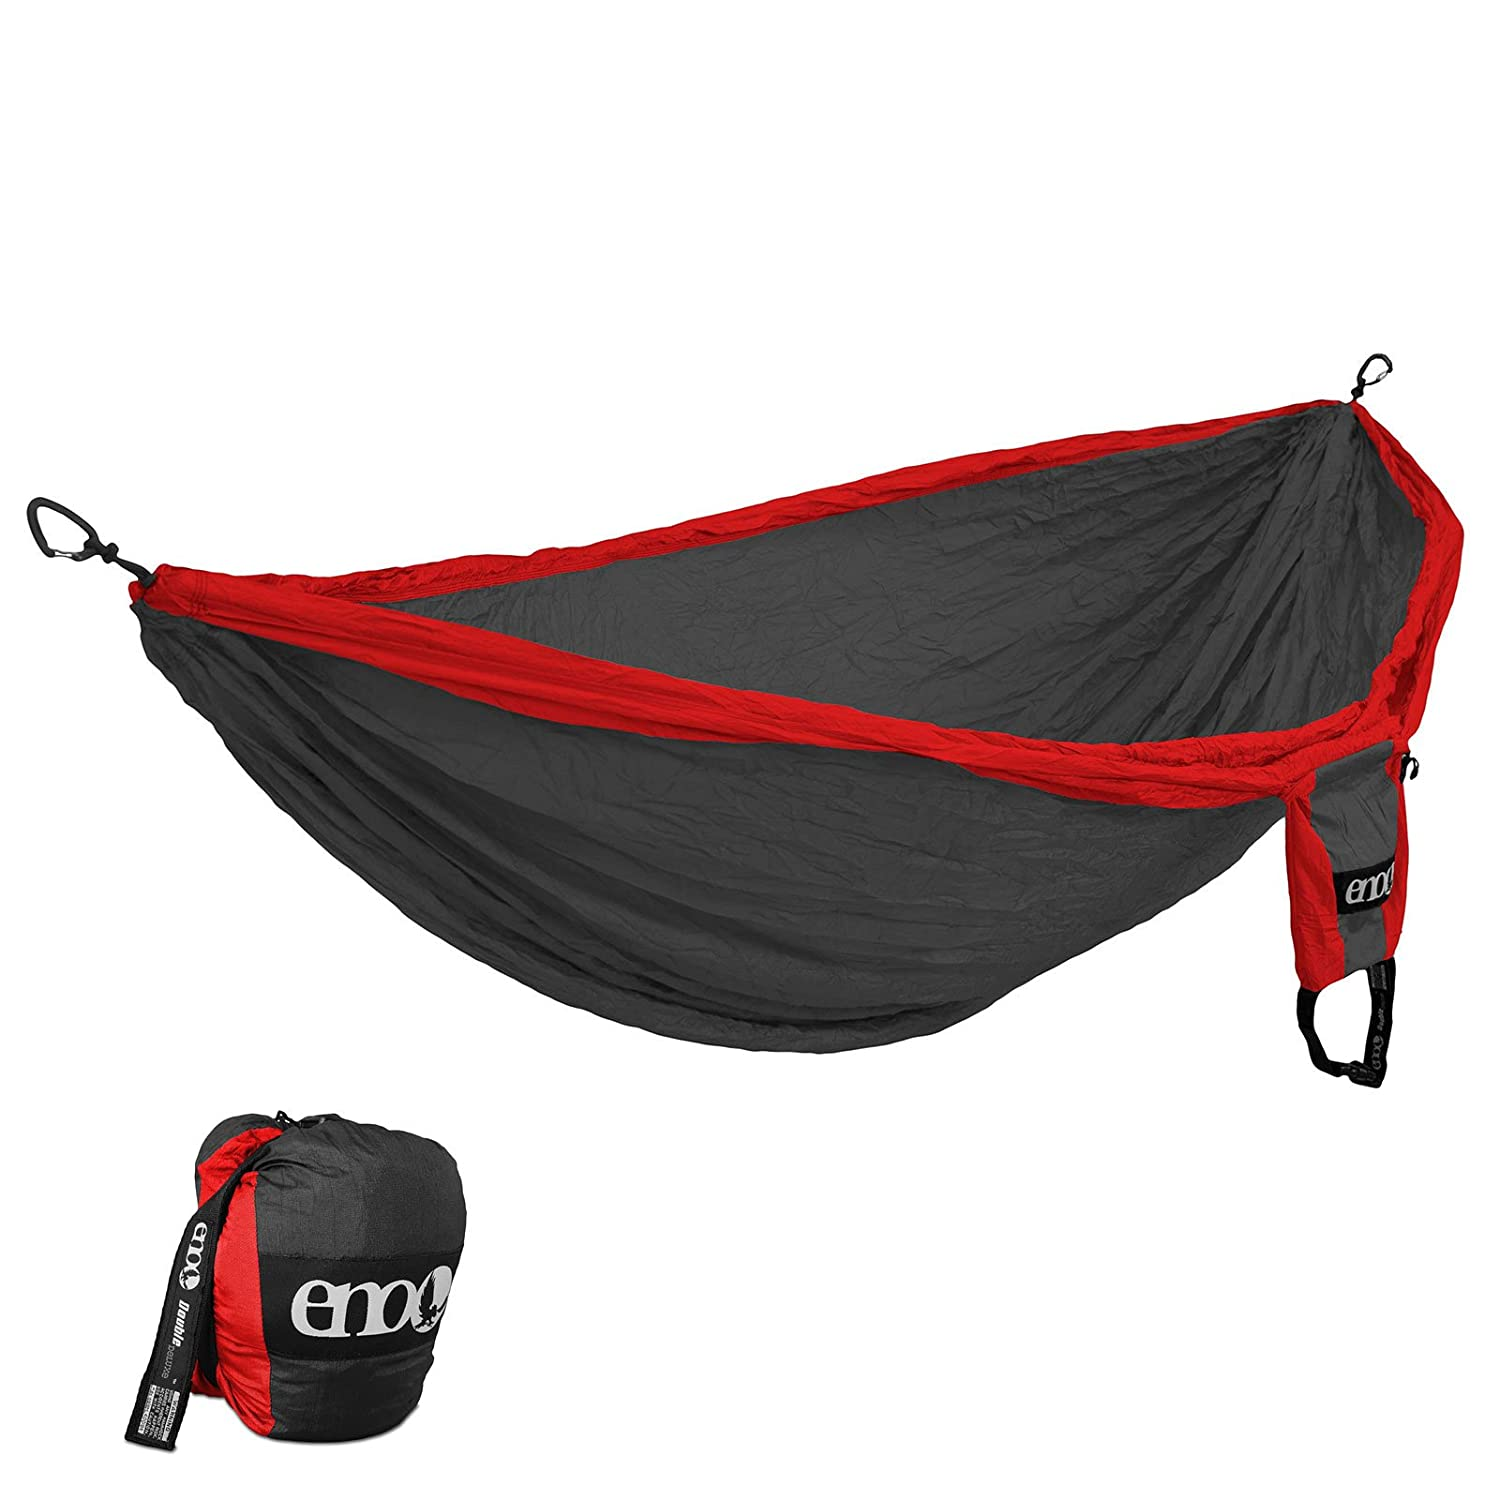 ENO Double Deluxe Hammock OneLink Tent System – Guardian Bug Net, Atlas Strap, and Tarp